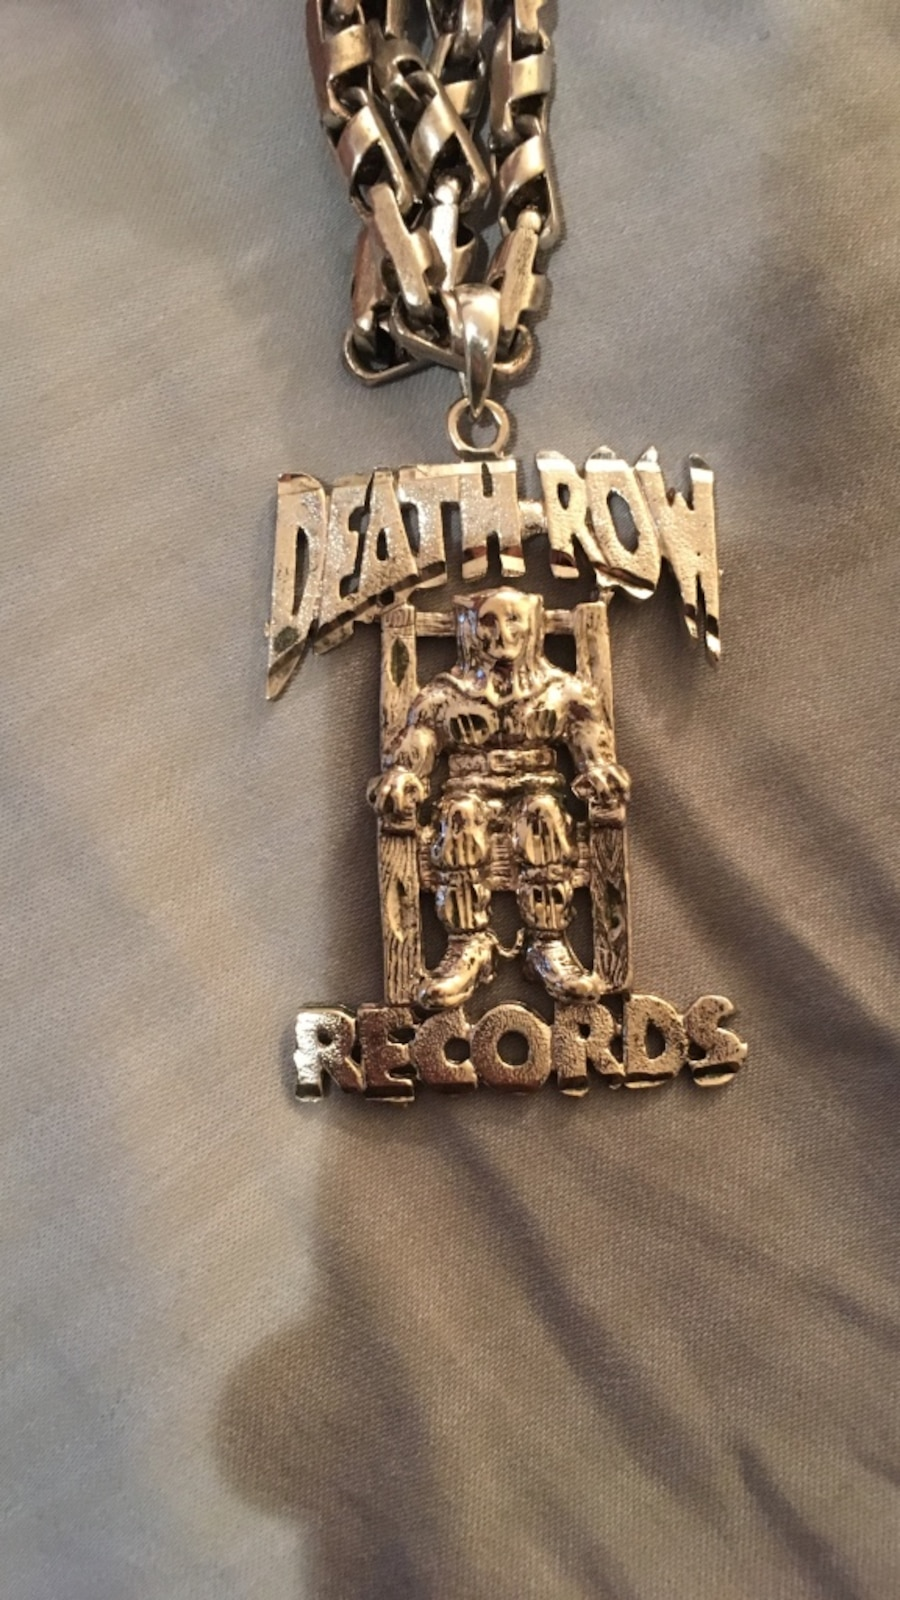 Used silver death row records pendant chain link necklace 22 inches used silver death row records pendant chain link necklace 22 inches in montral aloadofball Choice Image